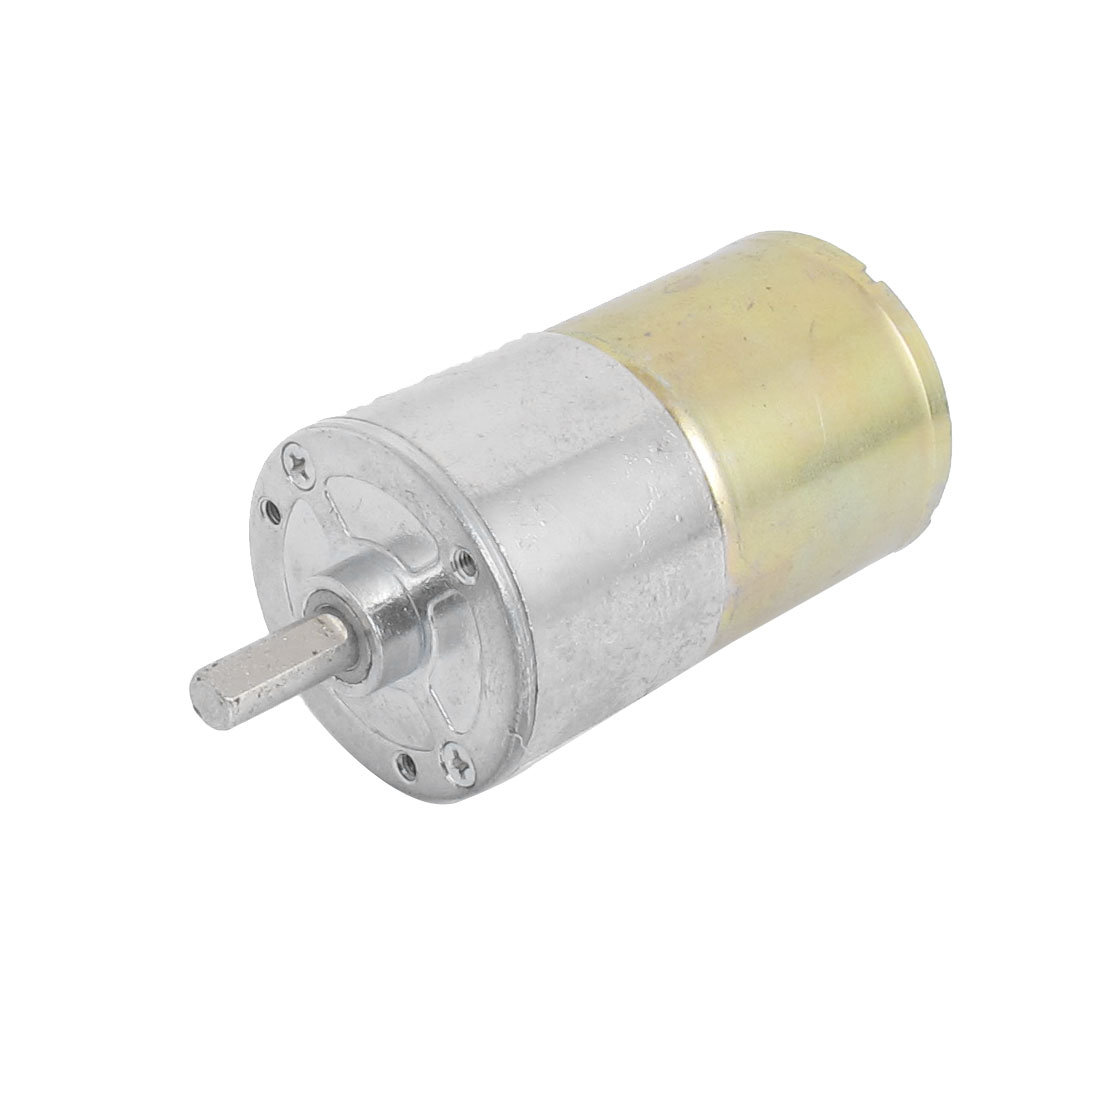 DC 12V 20RPM 5.5mm Shaft Dia Cylindrical Geared Gear Box Speed Reducing Electric Motor